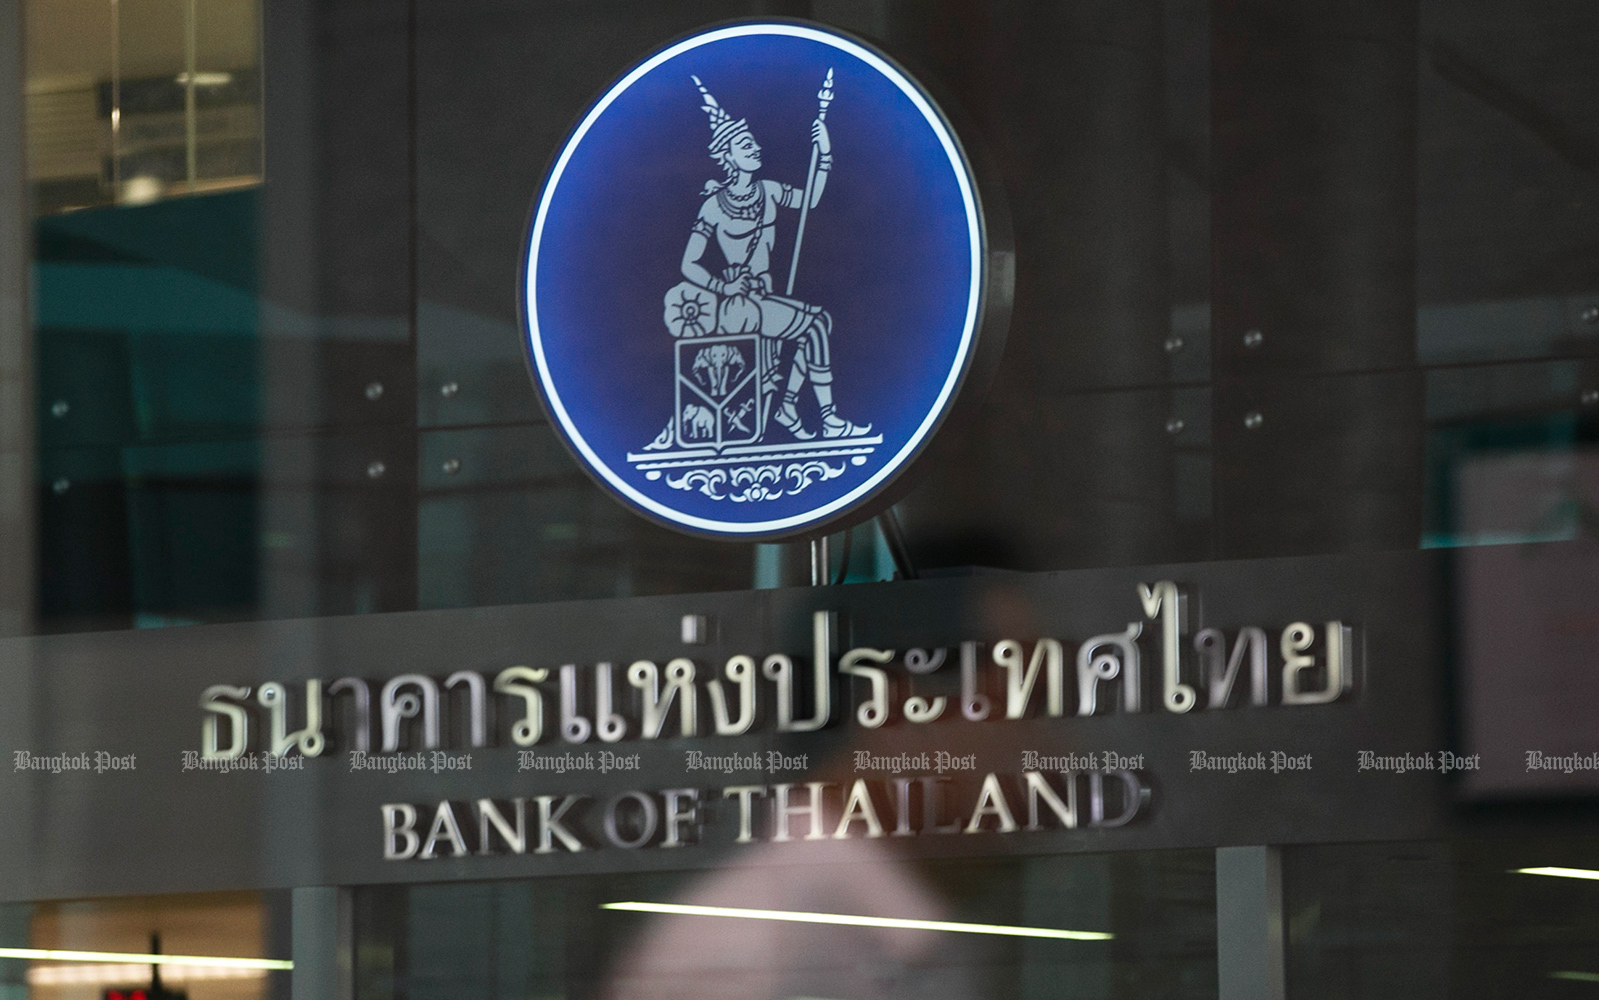 Nine commercial banks have sought liquidity support worth a total of 56 billion baht for their purchases of mutual fund units through the Bank of Thailand.